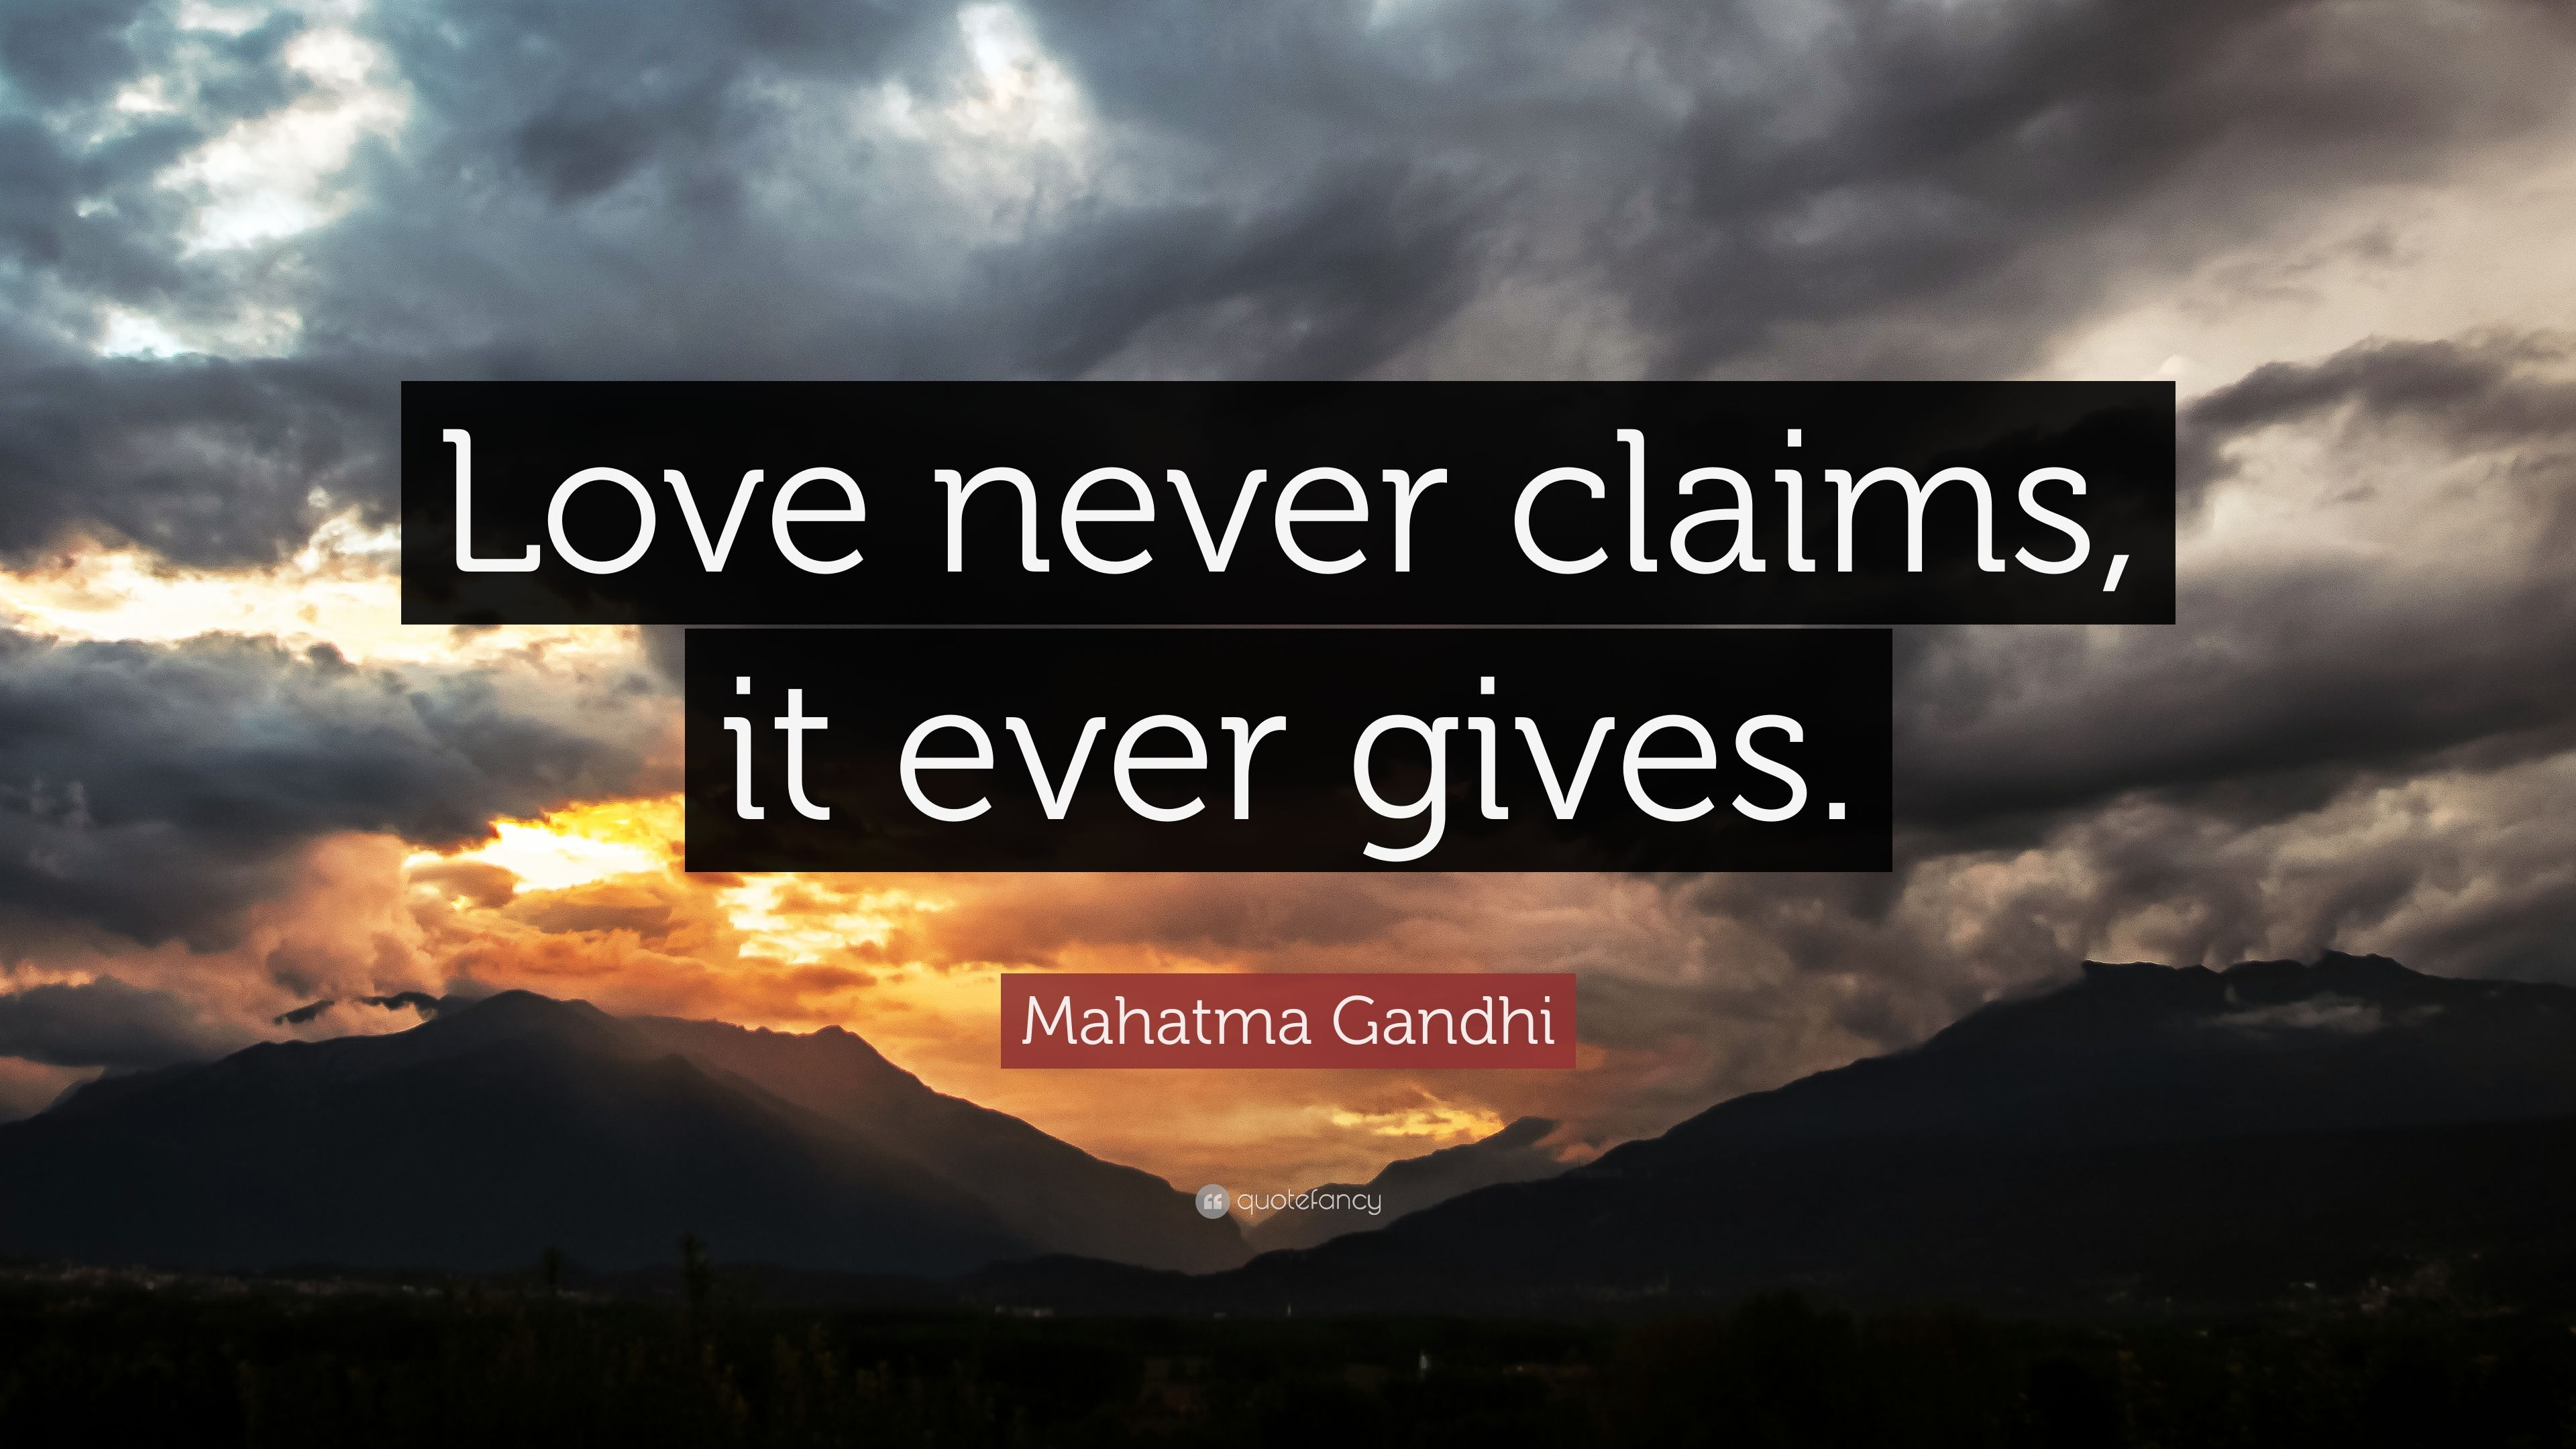 """Mahatma Gandhi Quotes On Love Mahatma Gandhi Quote """"Love Never Claims It Ever Gives."""" 7"""